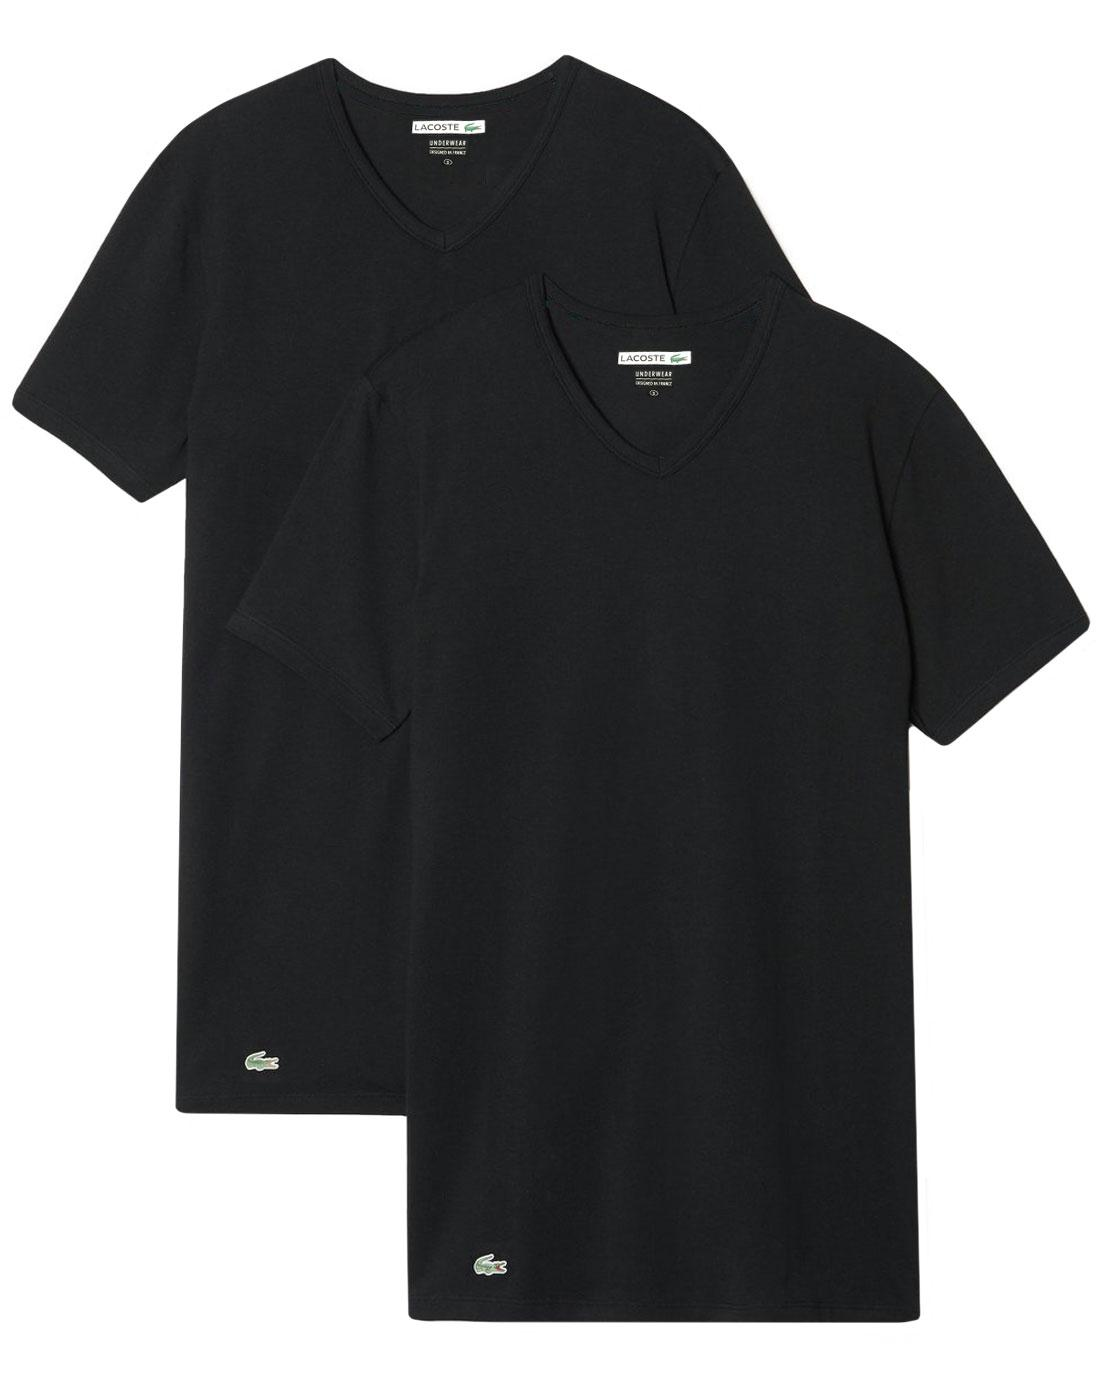 LACOSTE Men's Retro 2 Pack V-Neck T-Shirt - BLACK